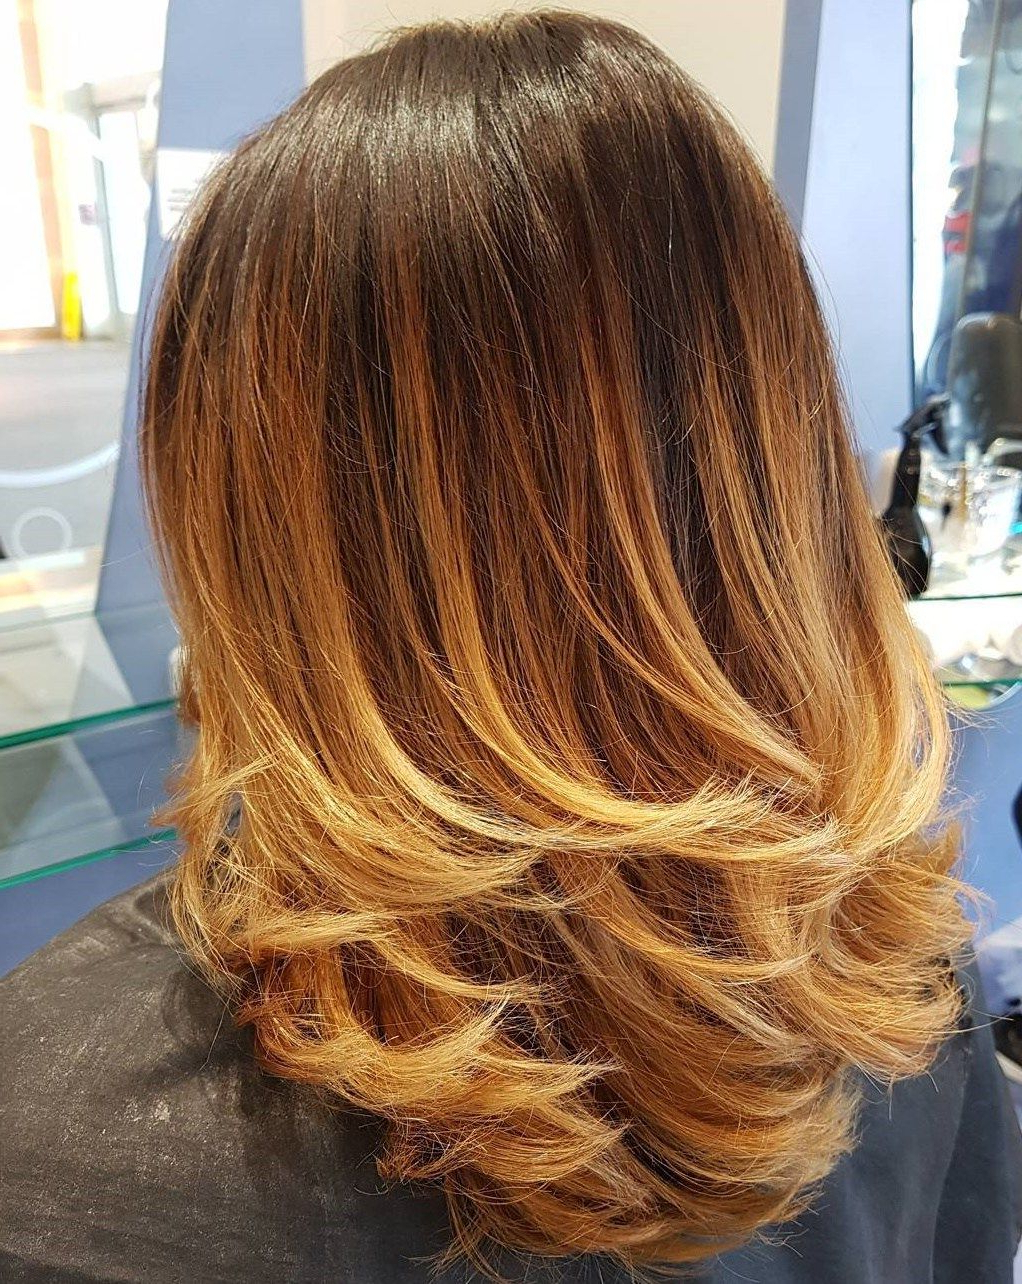 70 Brightest Medium Layered Haircuts To Light You Up (Gallery 4 of 20)